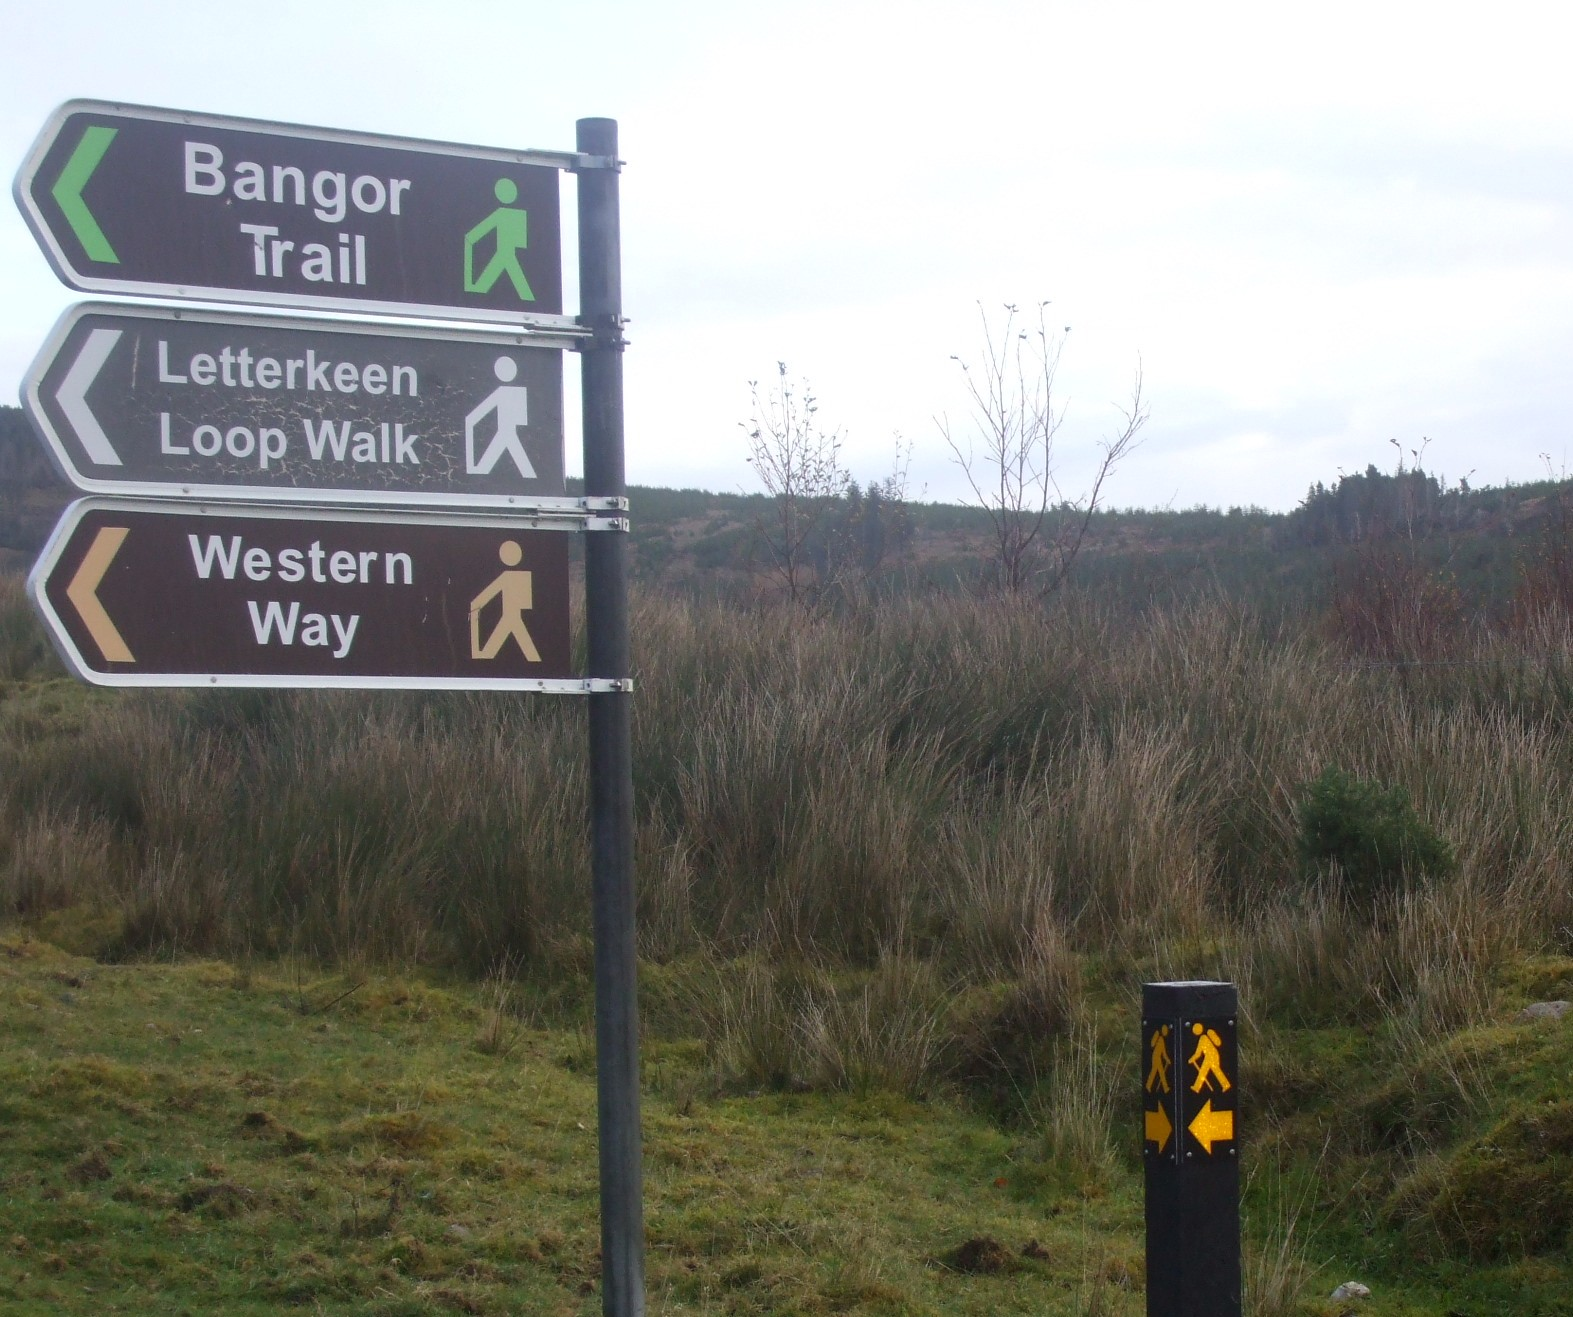 The Bangor Trail